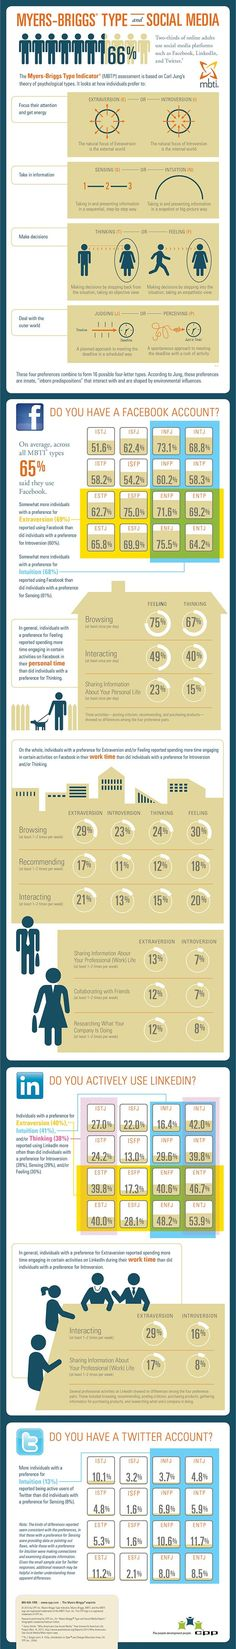 Social Media & Personality Type Infographic erg interessant voor social media strategie